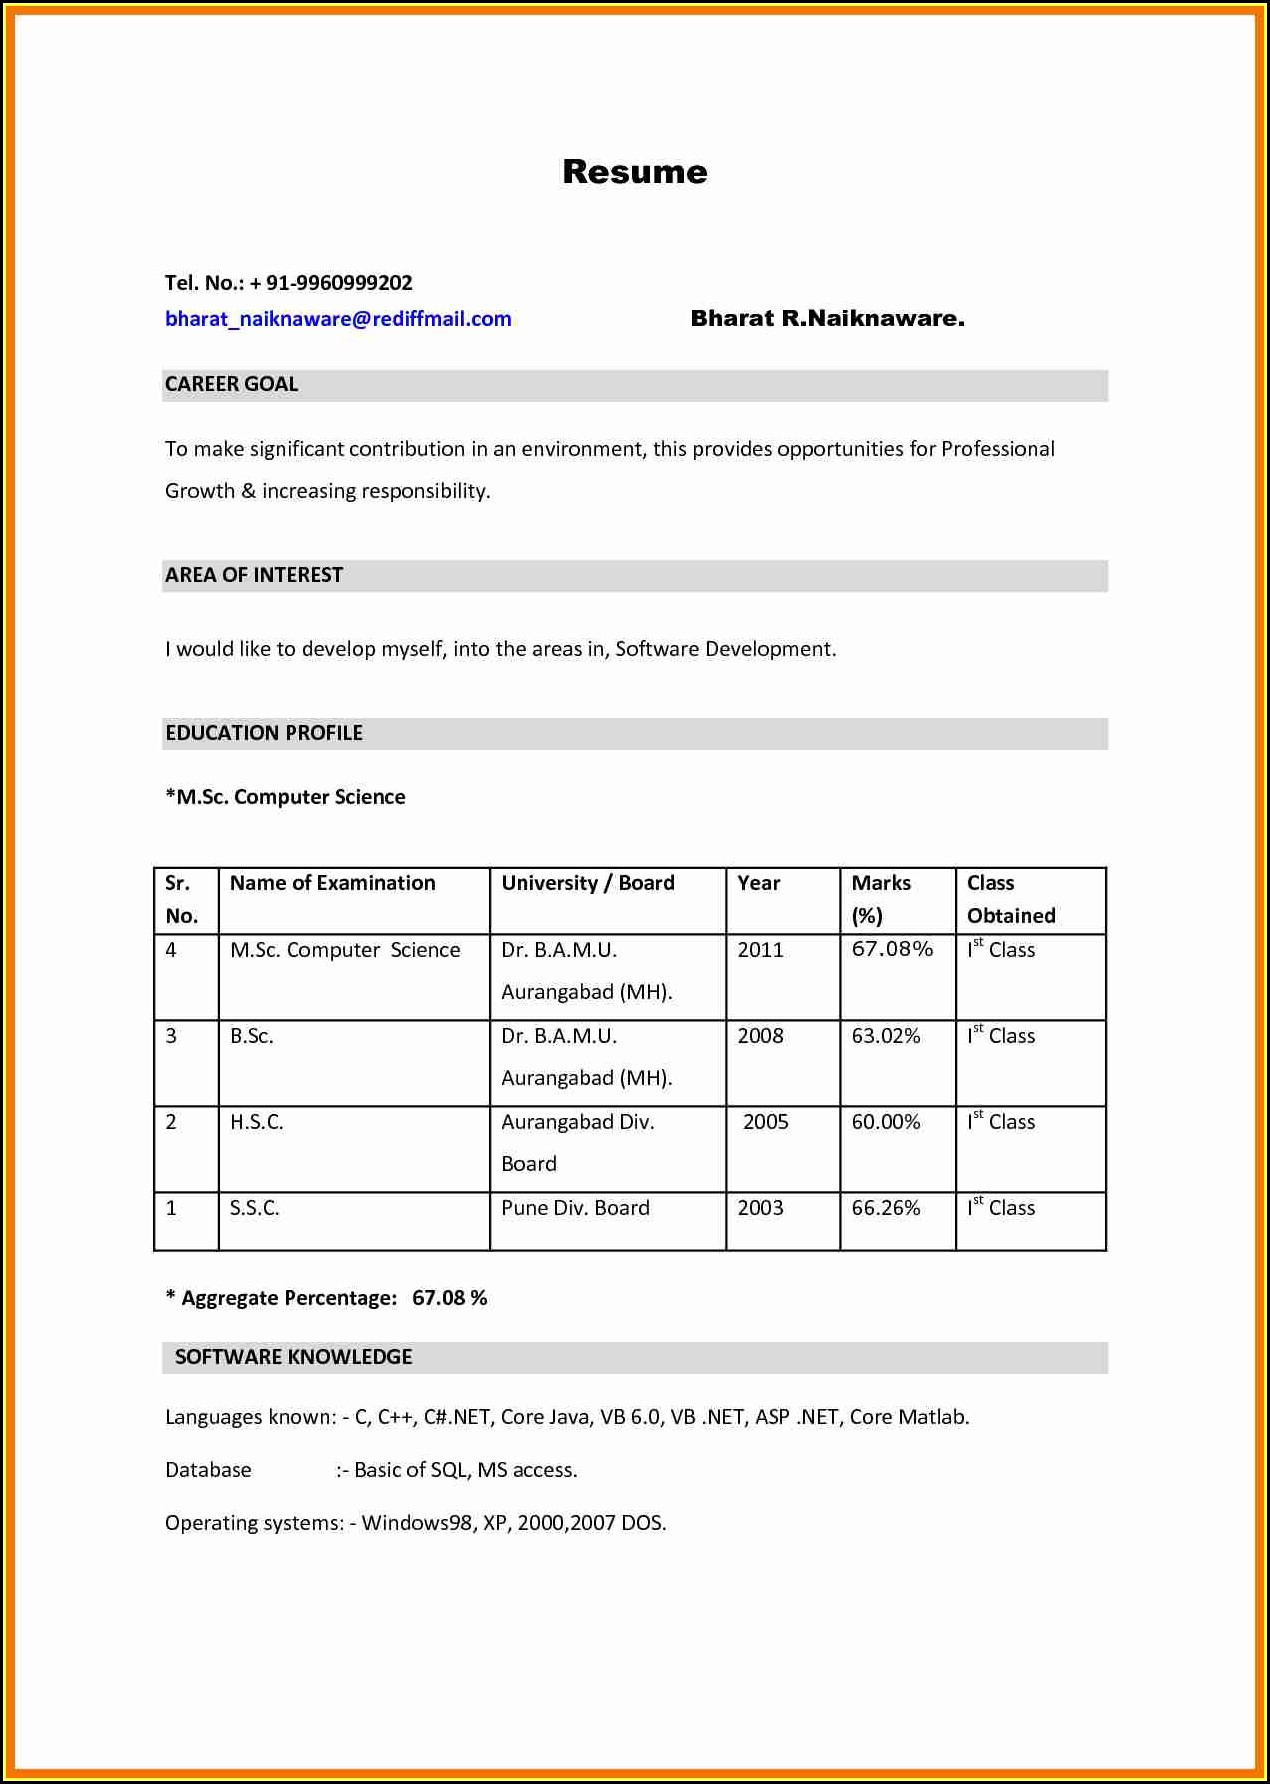 bsc resume format pdf best examples sample for nursing fresher experienced apn dos and Resume Resume Format For Freshers Pdf